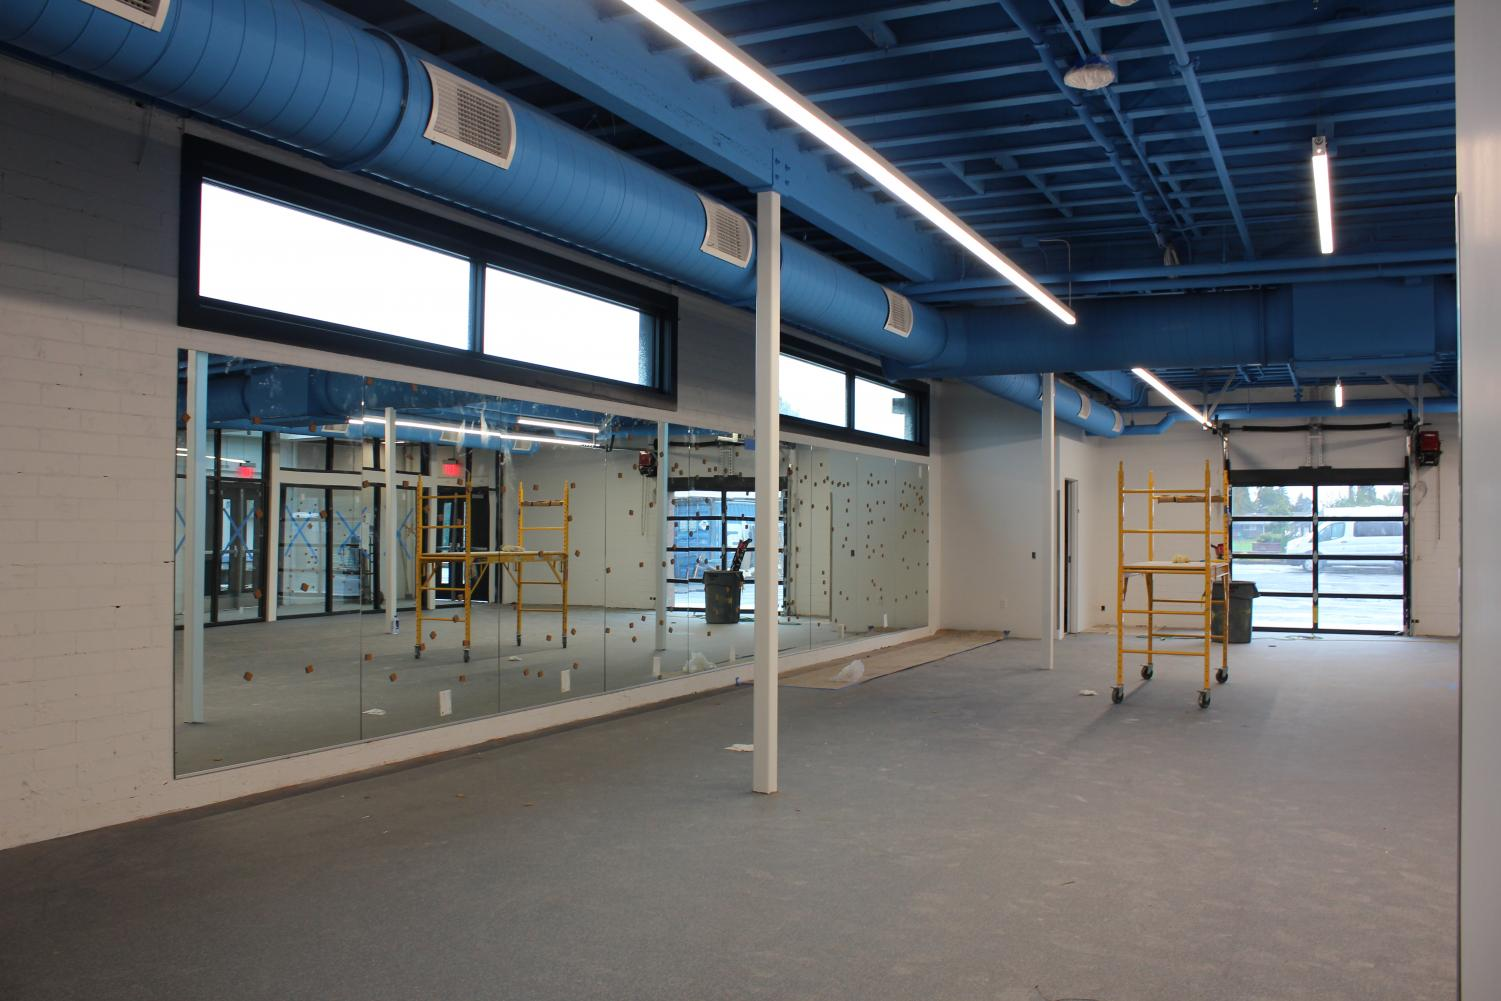 Behind+the+Scenes+of+the+New+Saalfeld+Athletic+Center